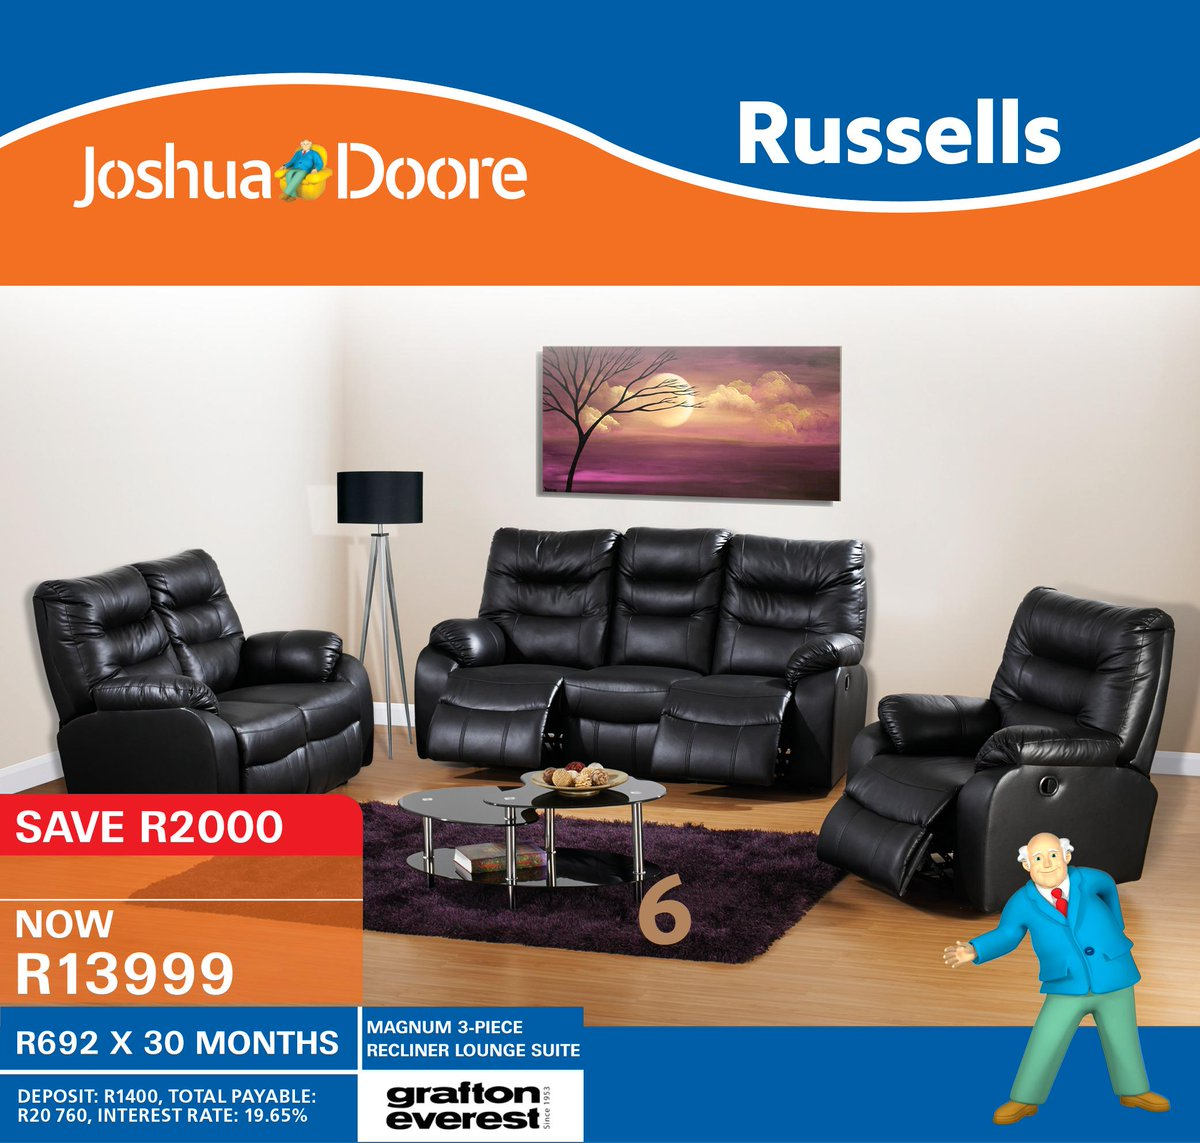 Joshua Doore on Twitter  SAVE R2000 when you purchase this beautiful MAGNUM 3-PIECE RECLINER LOUNGE SUITE! Limited Stock Available* //t.co/eXlELSDHWC   sc 1 st  Twitter : joshua door - Pezcame.Com